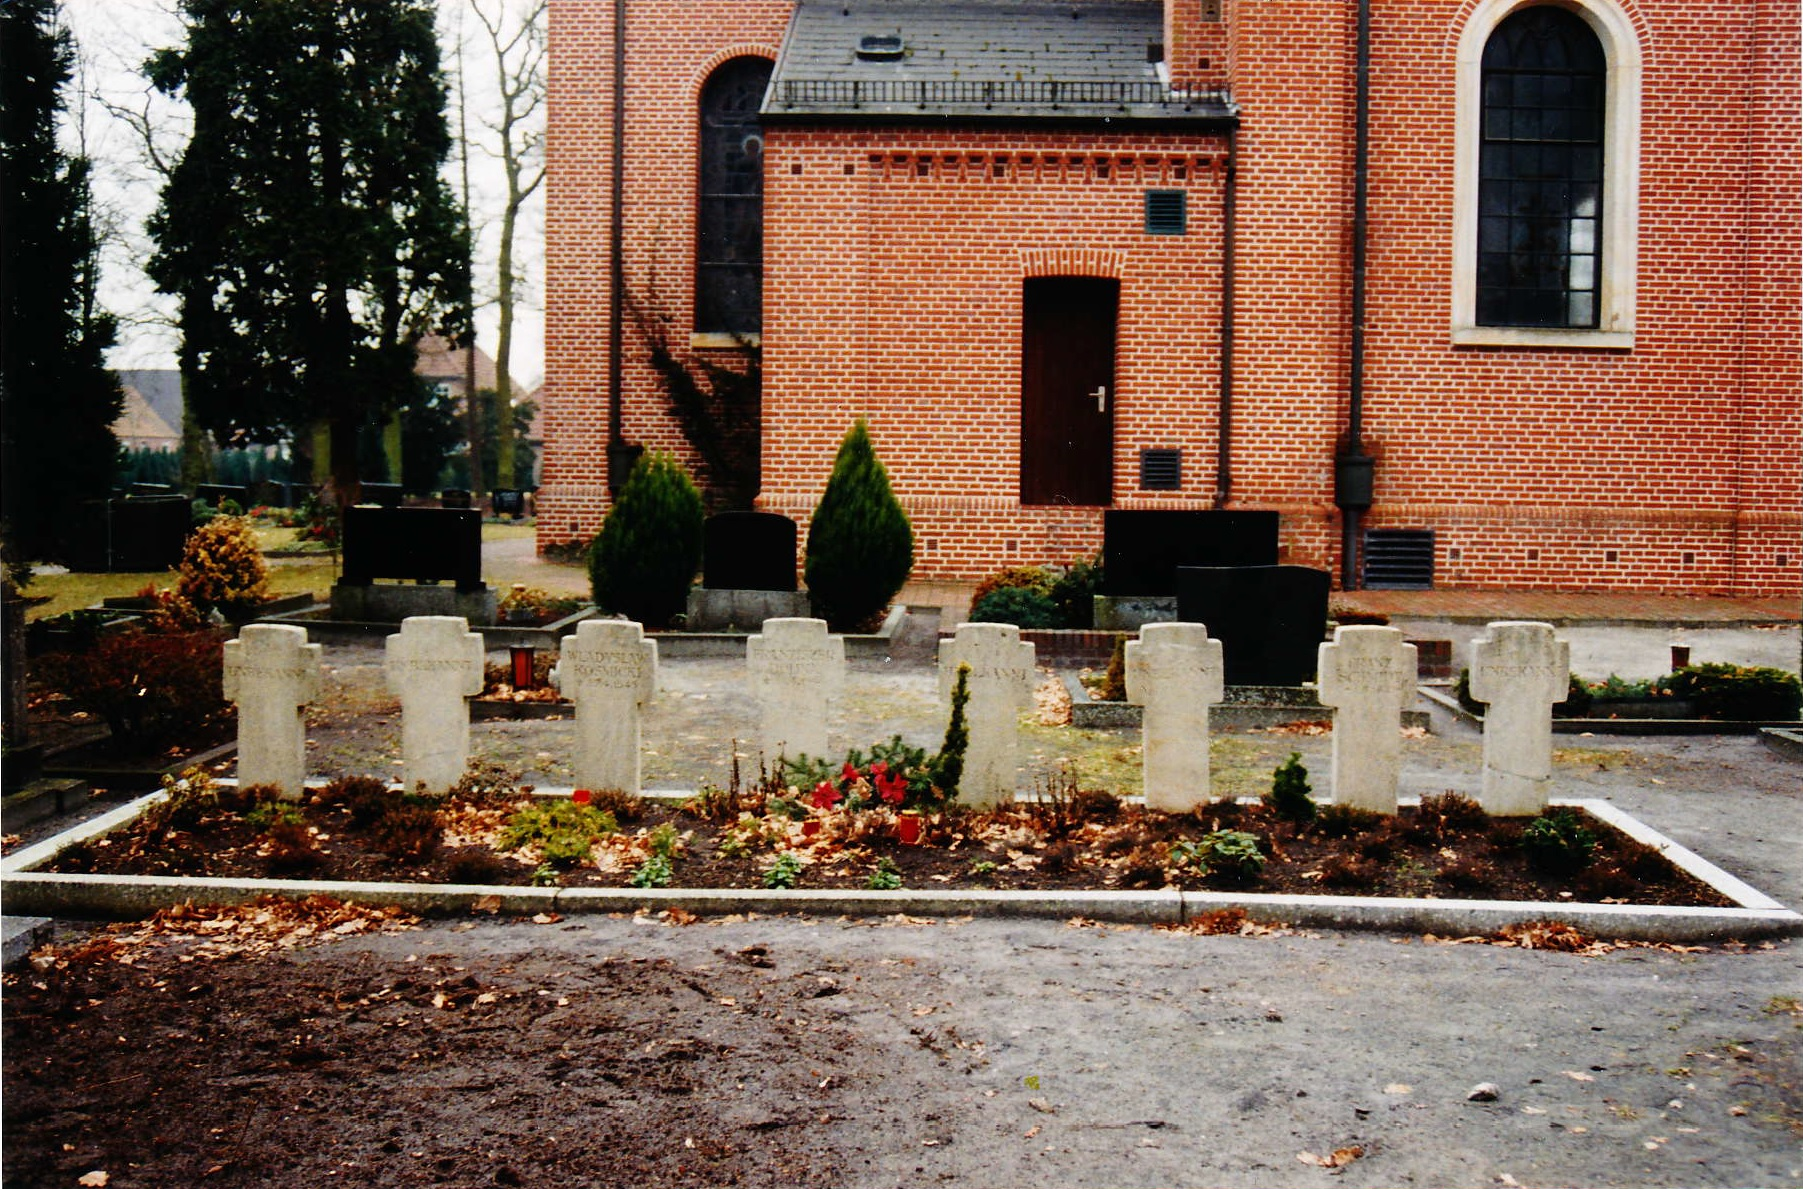 Buriel ground for soldiers at the catholic cemetery in Flachsmeer